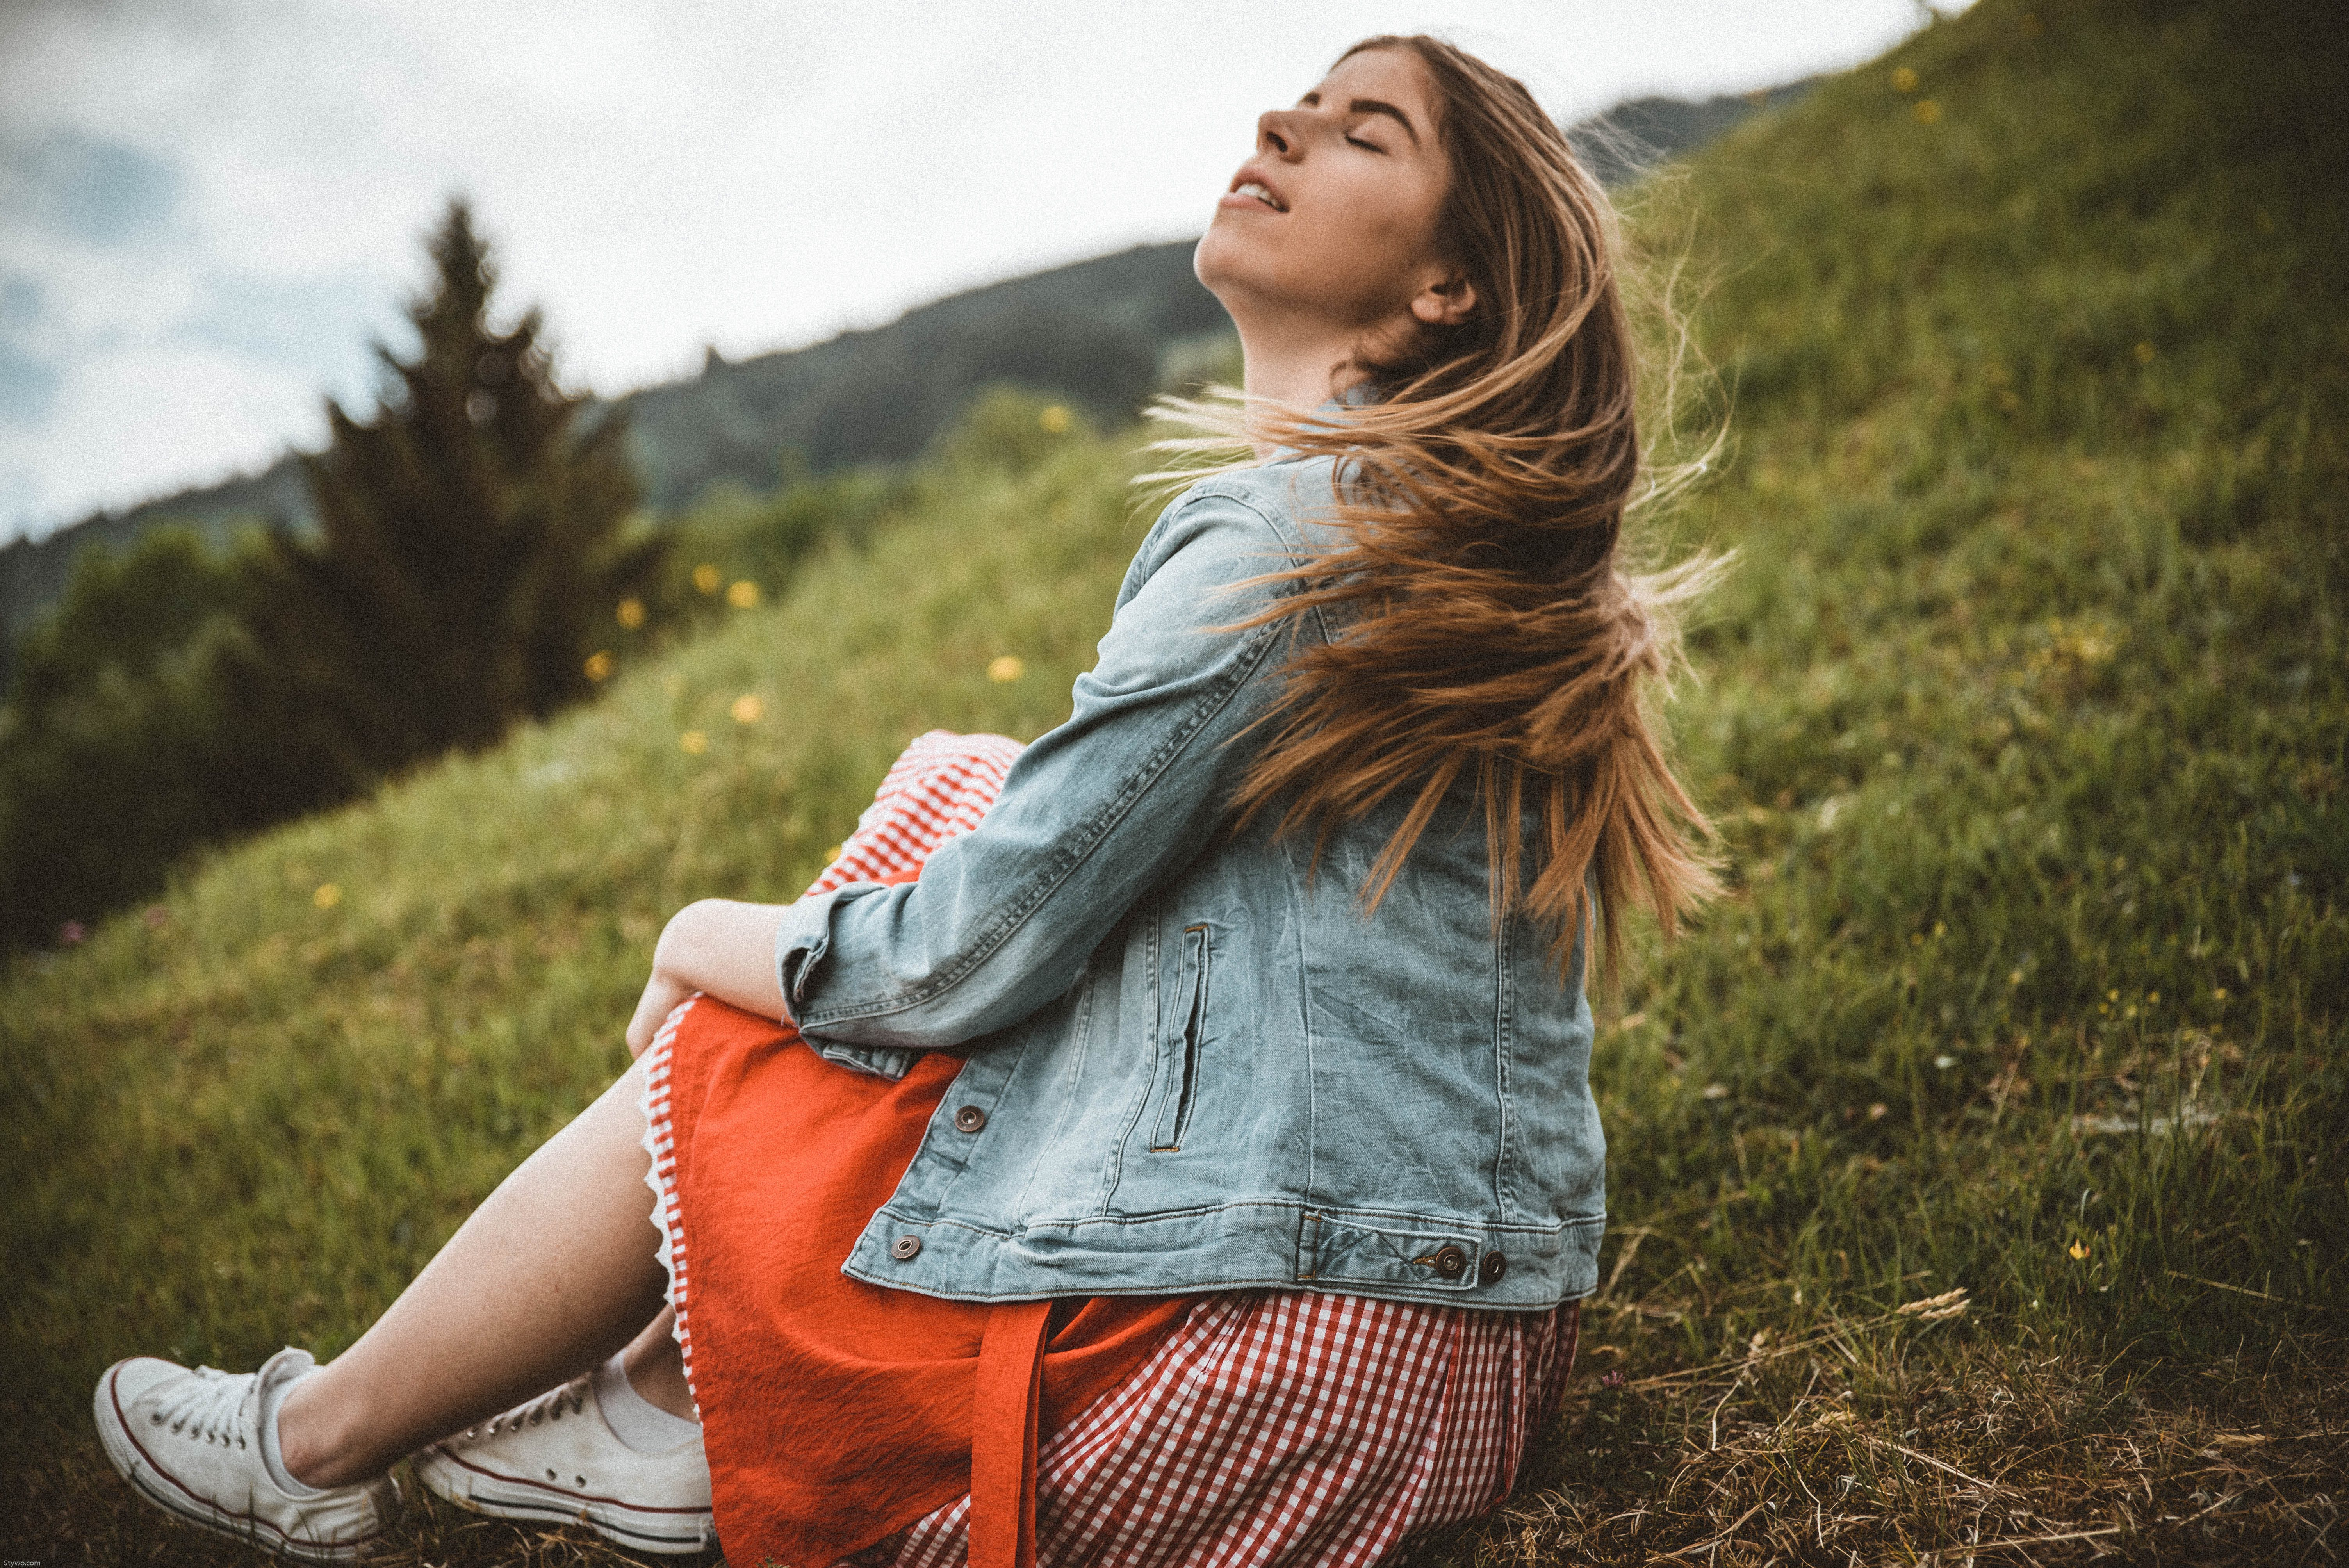 Woman Wearing Blue Denim Jacket Sitting on Green Grass Near Trees Under Blue Sky at Daytime